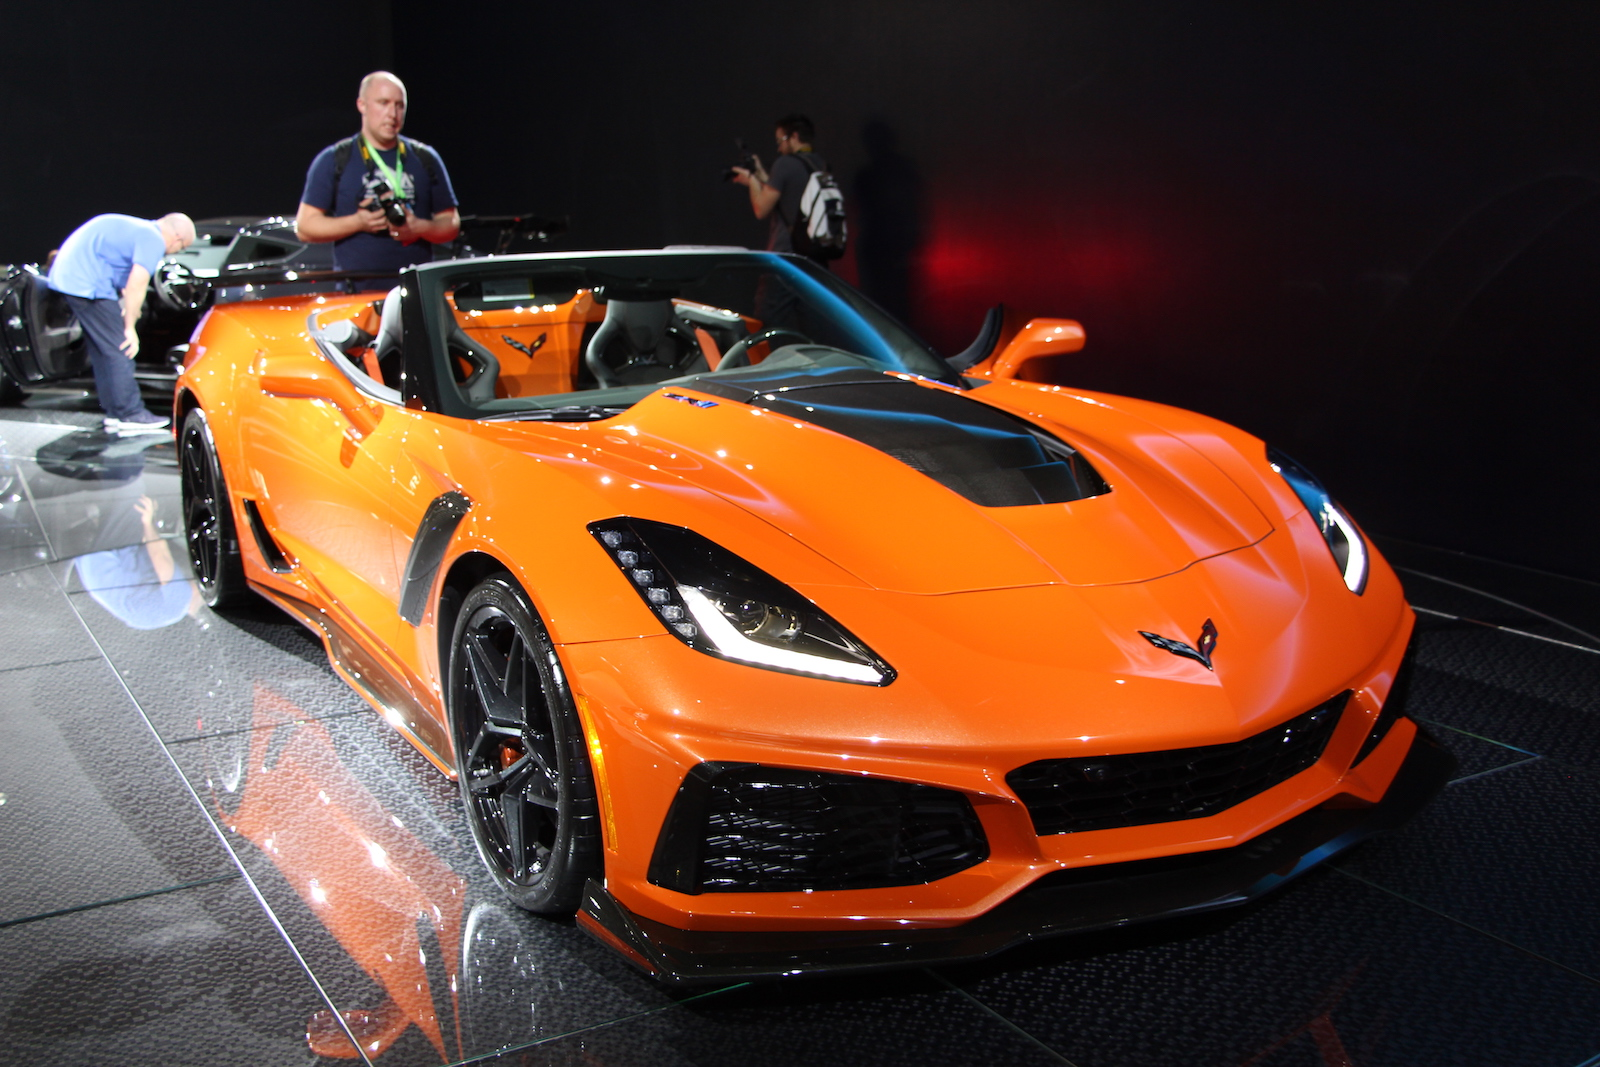 2019 Corvette Zr1 Convertible Debuts In Sunny Los Angeles